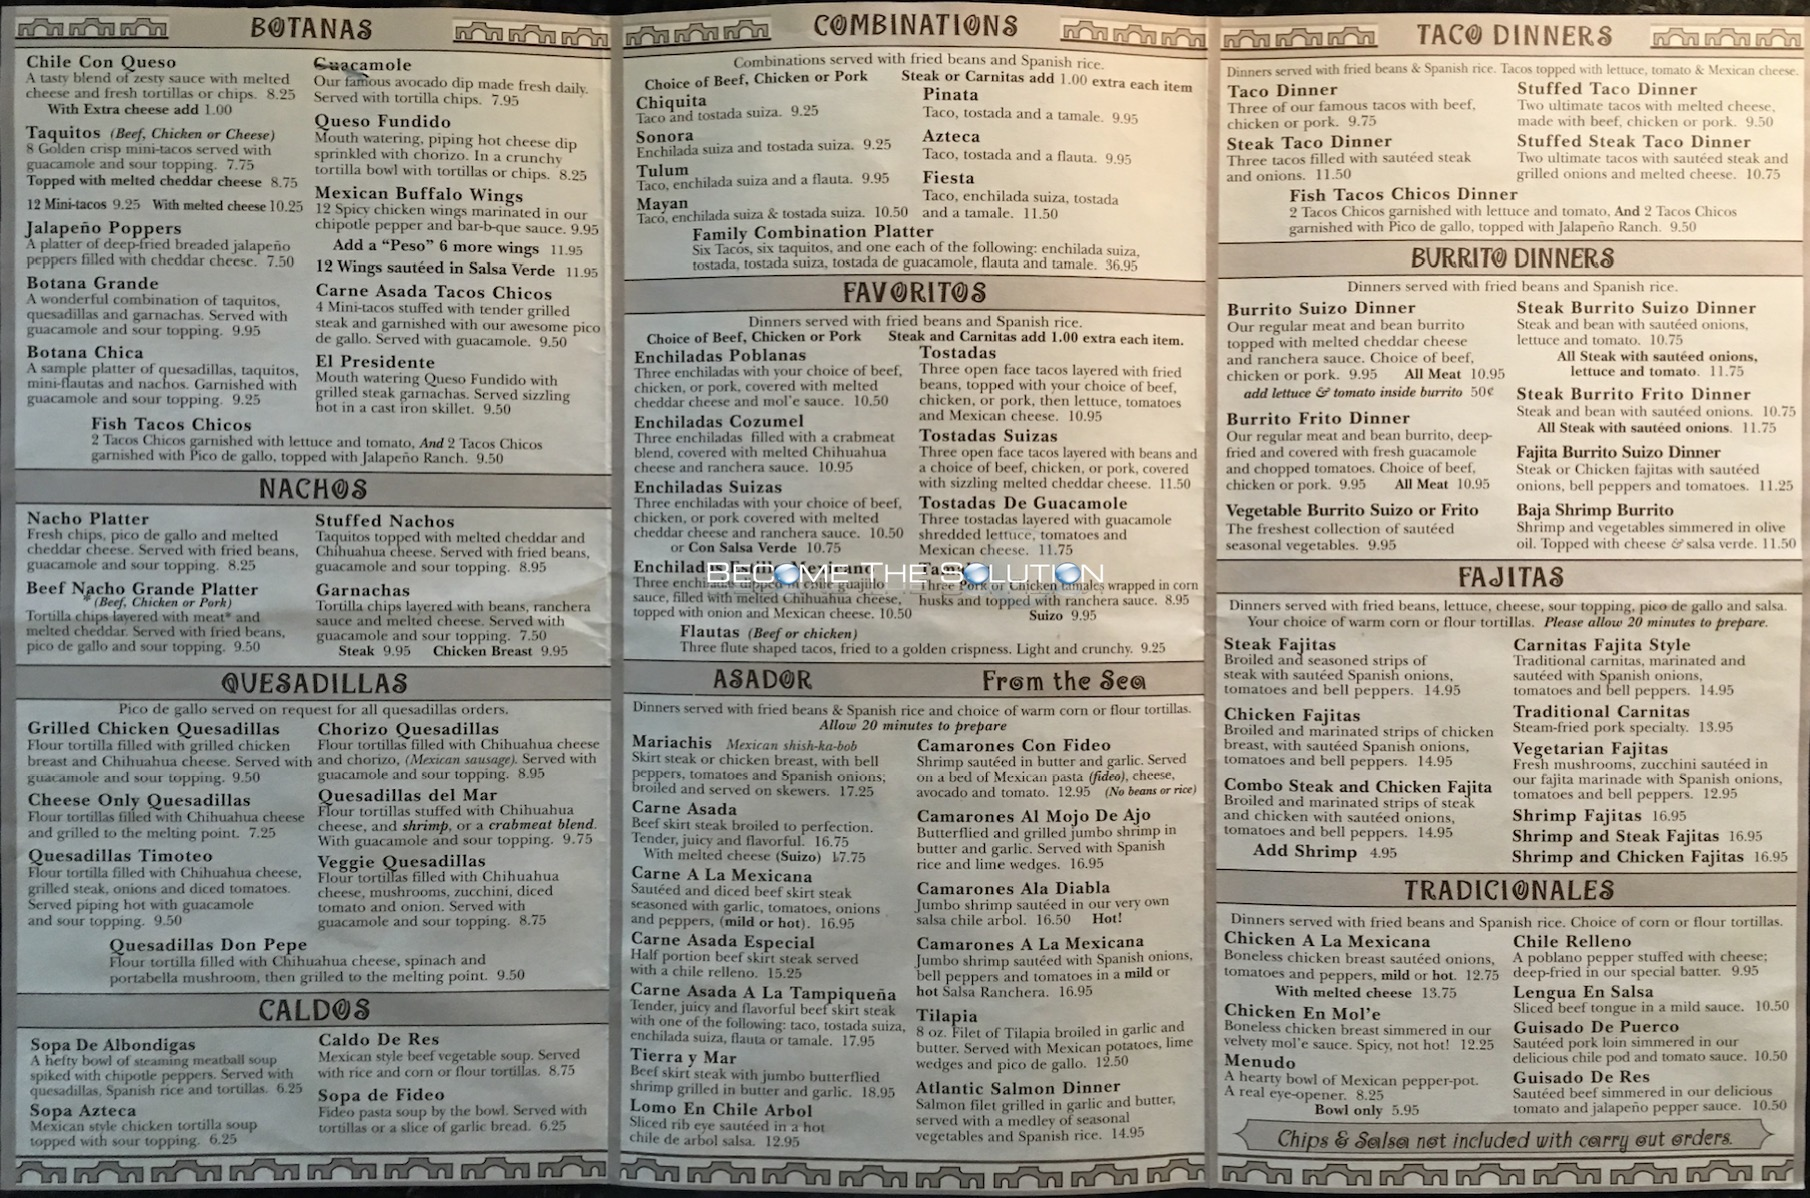 Pepe's Mexican Restaurant Chicago Menu 2